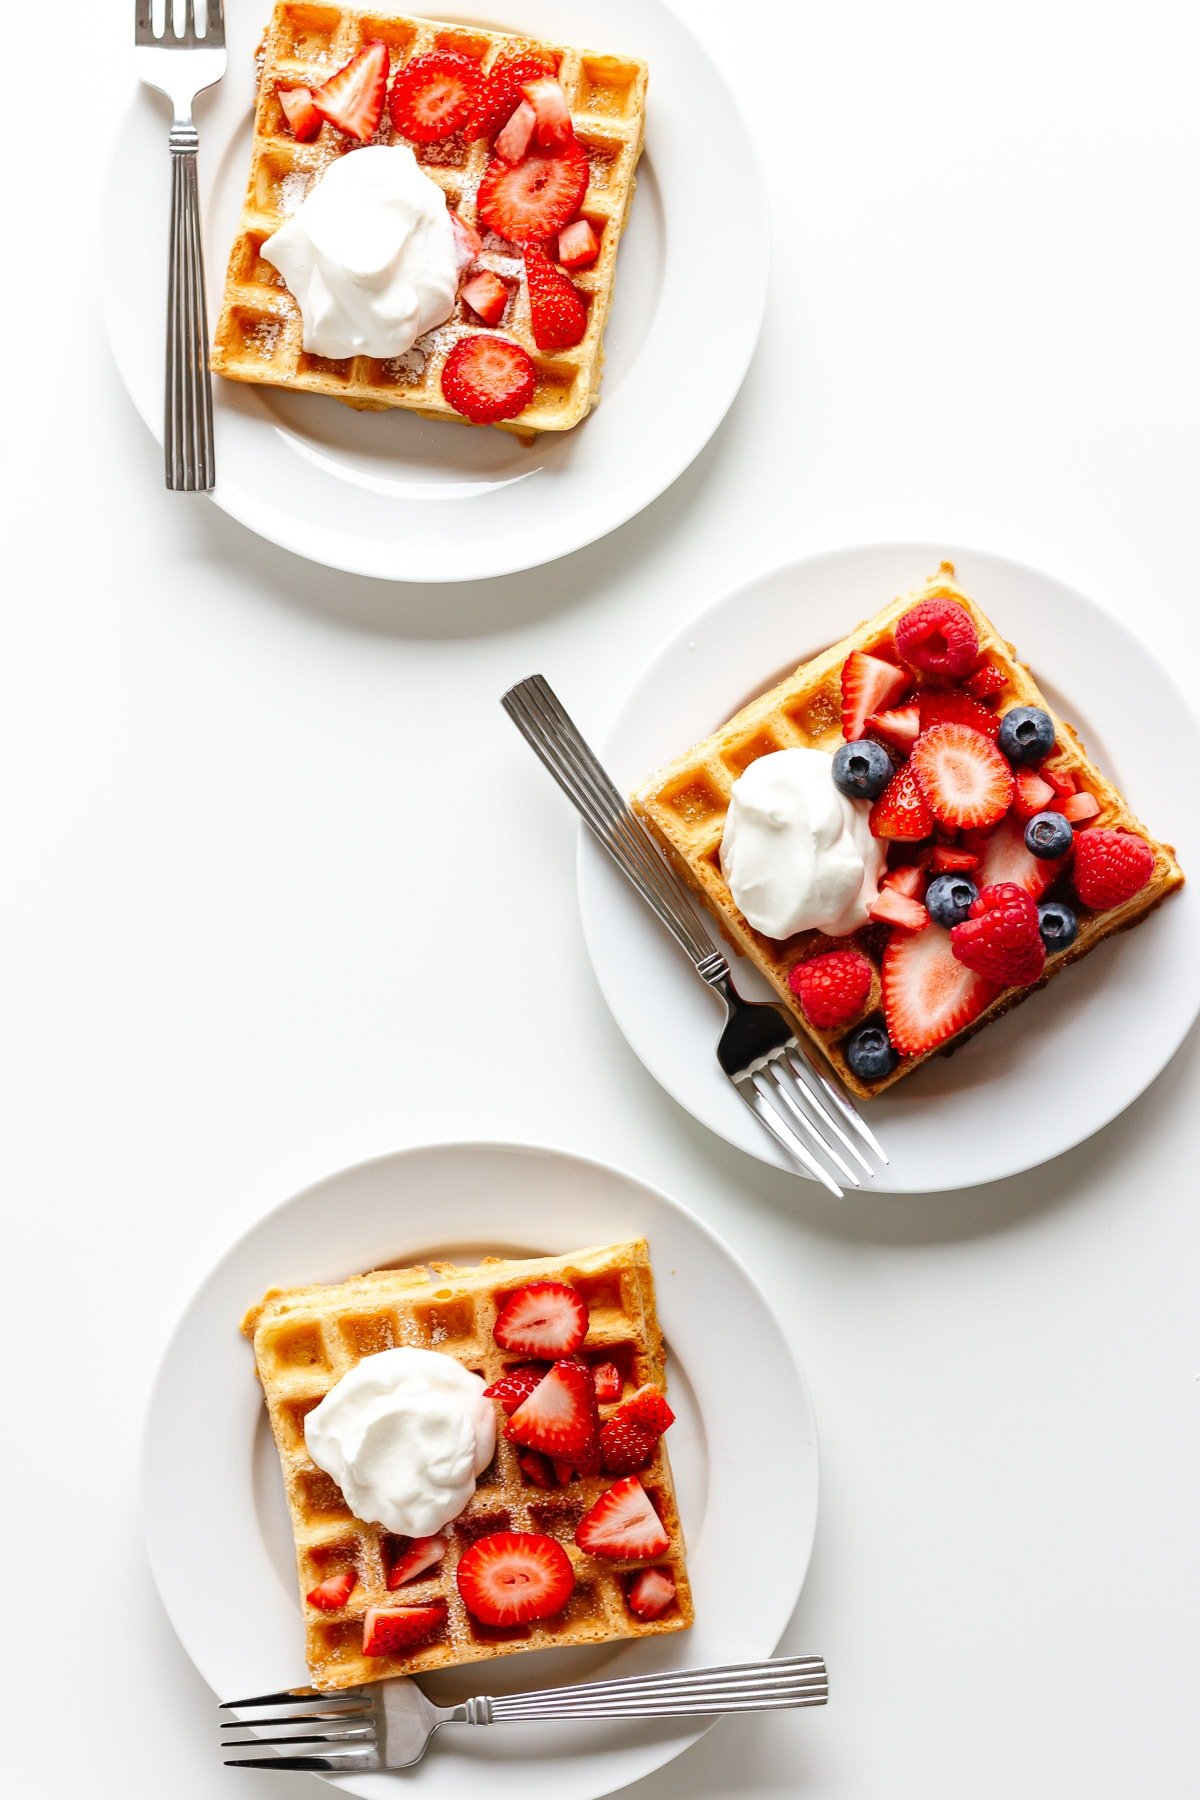 Three waffles on white plates with a fork and topped with berries and whipped cream.